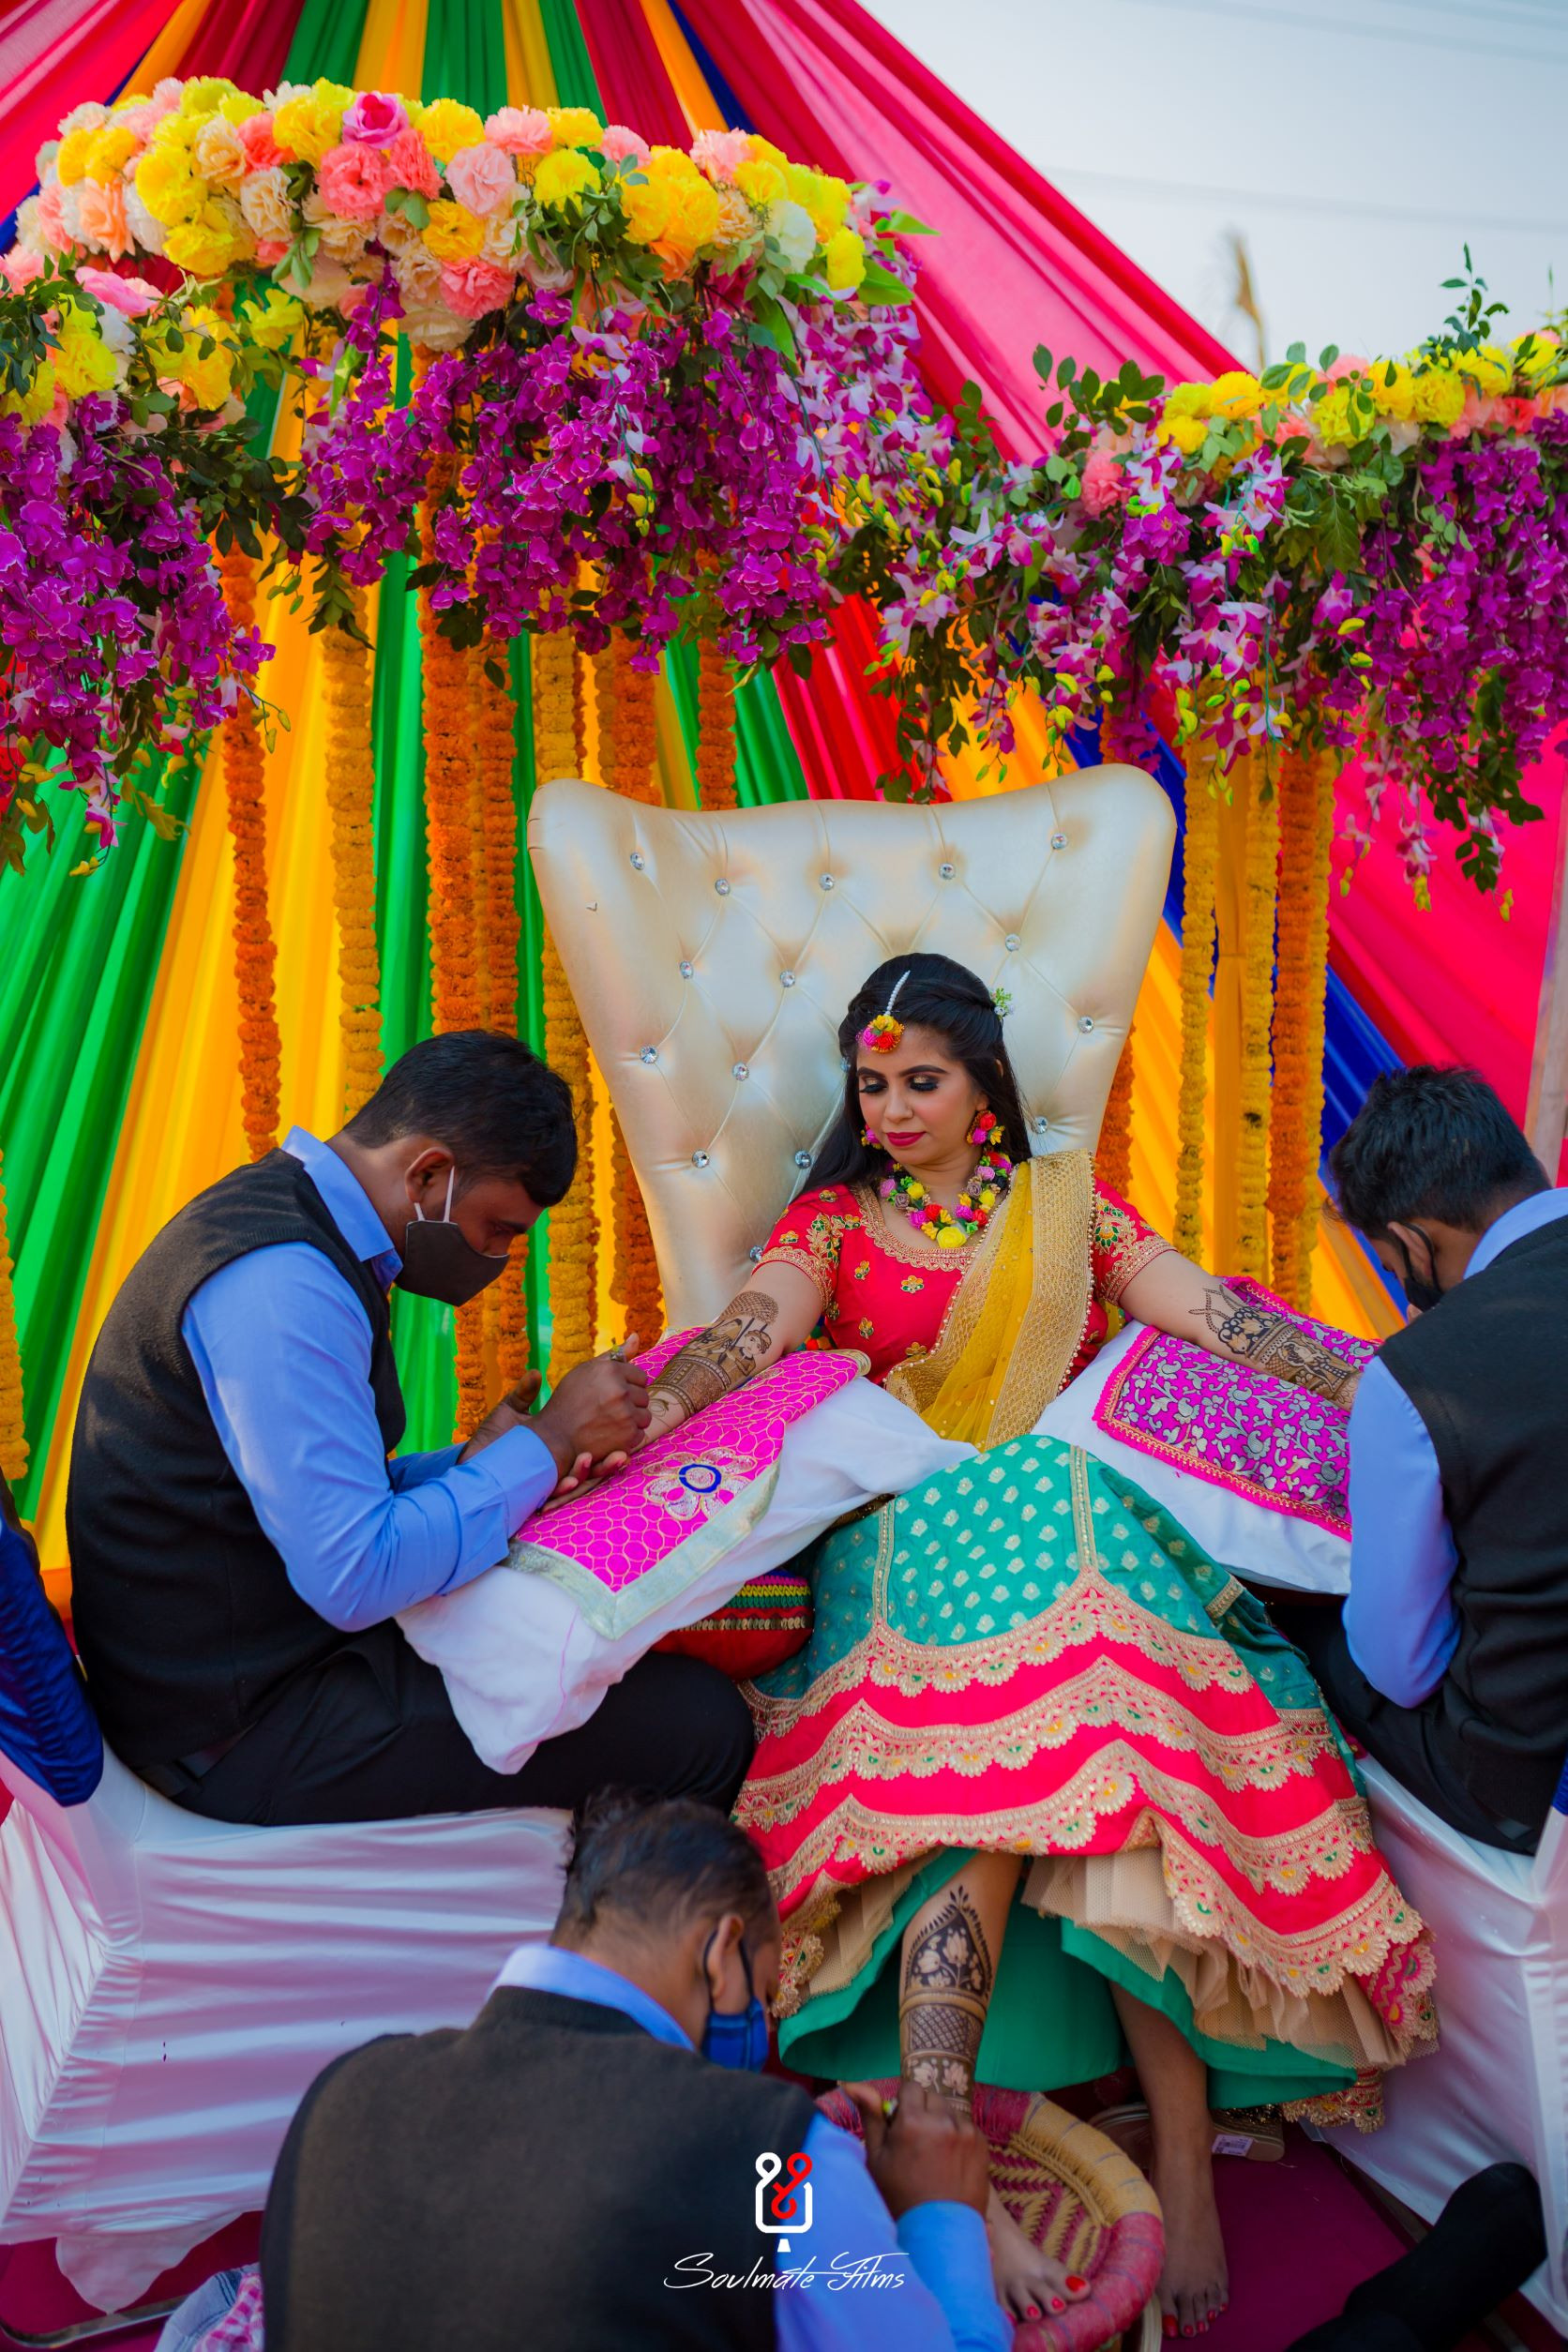 candid shot of the bride getting her mehendi